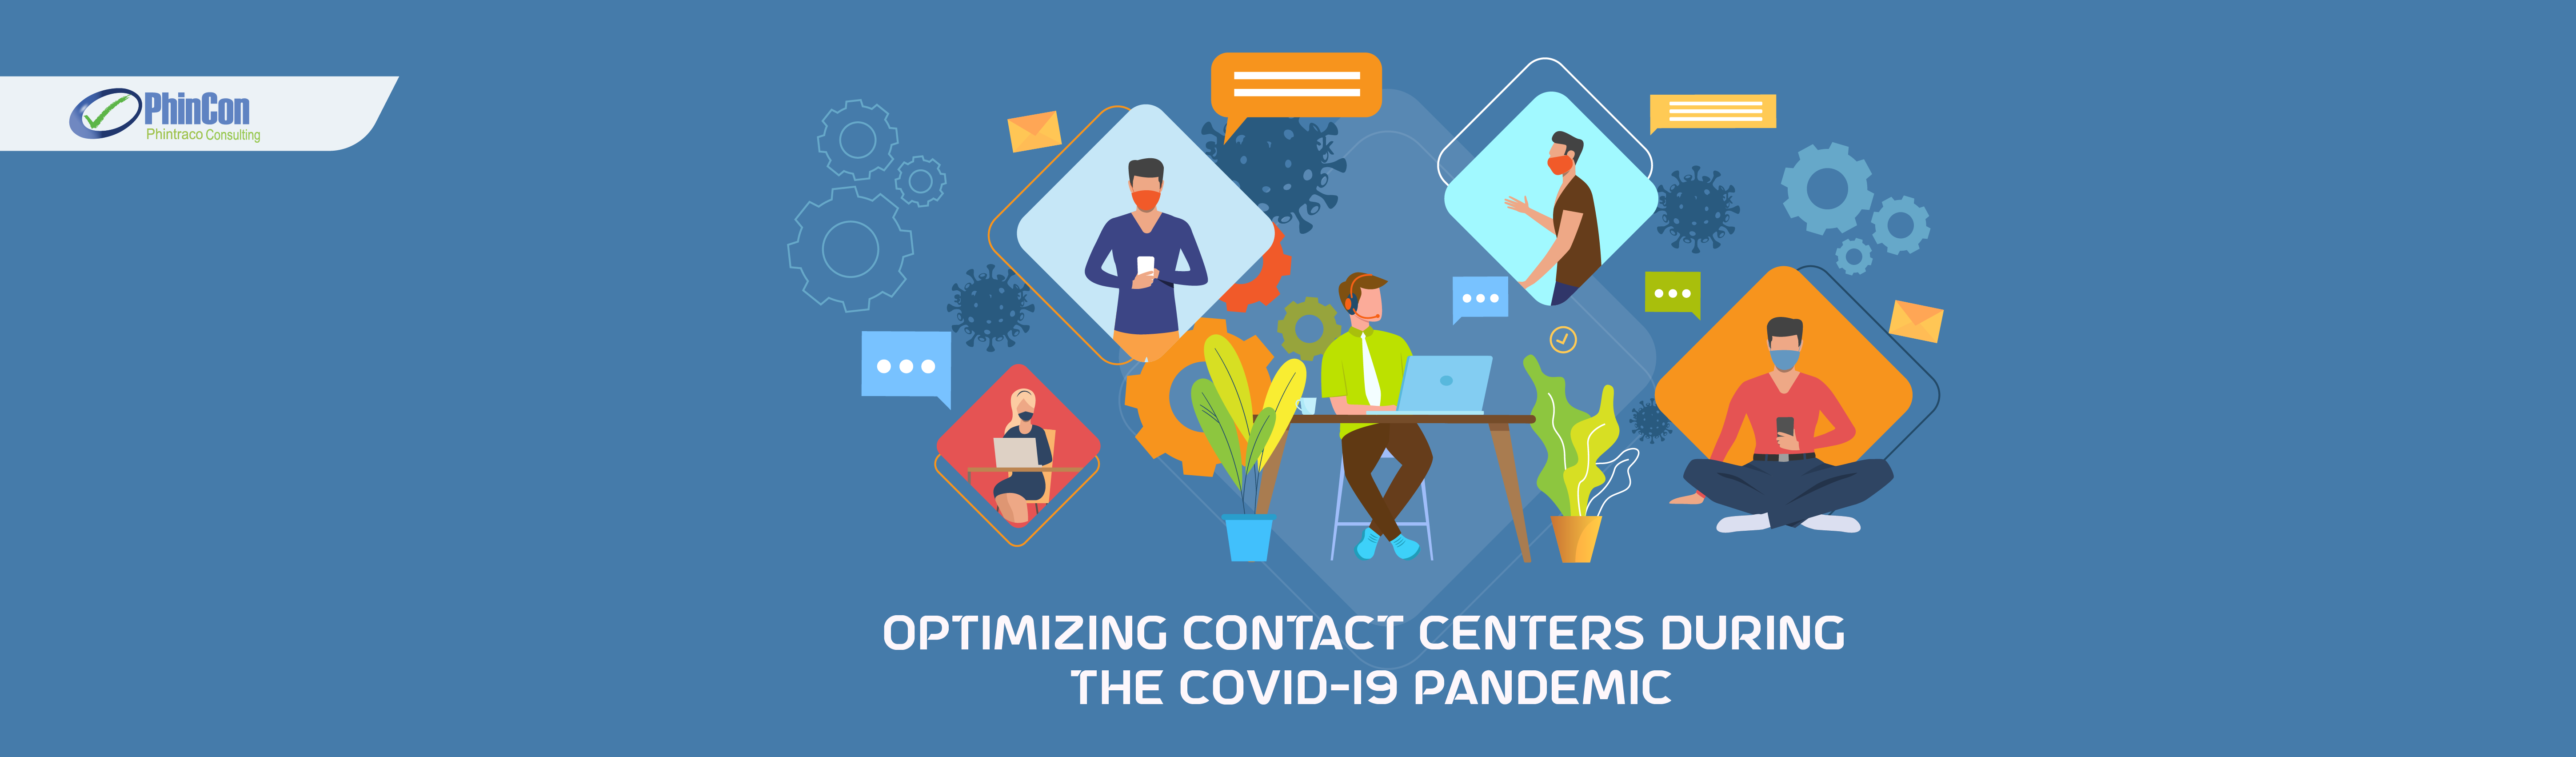 The Right Solution to Optimize Contact Center Performance during the Covid-19 Pandemic